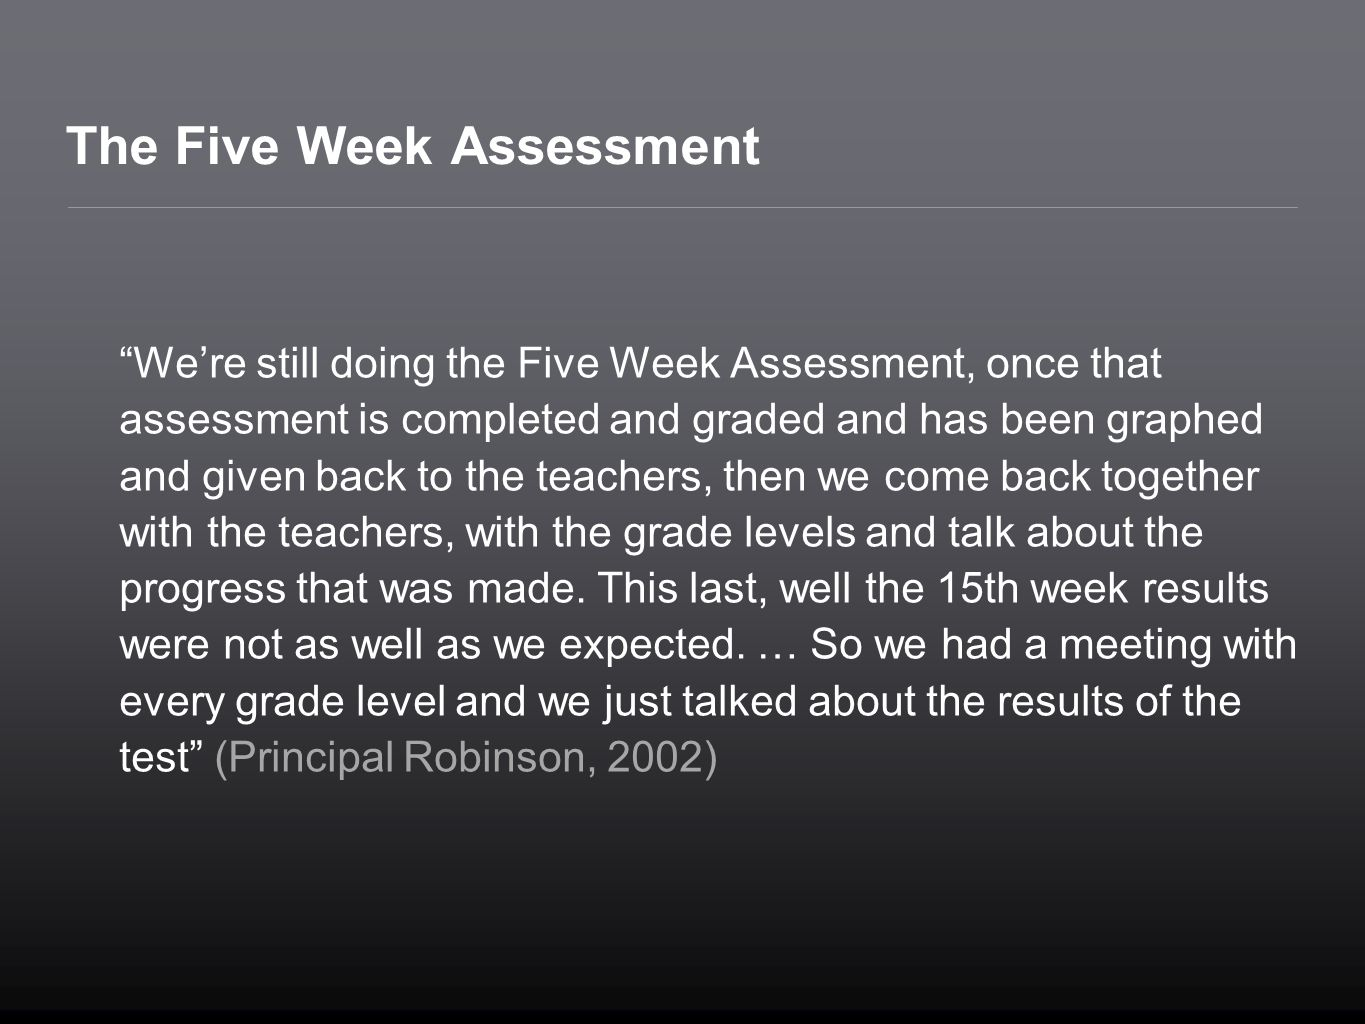 The Five Week Assessment